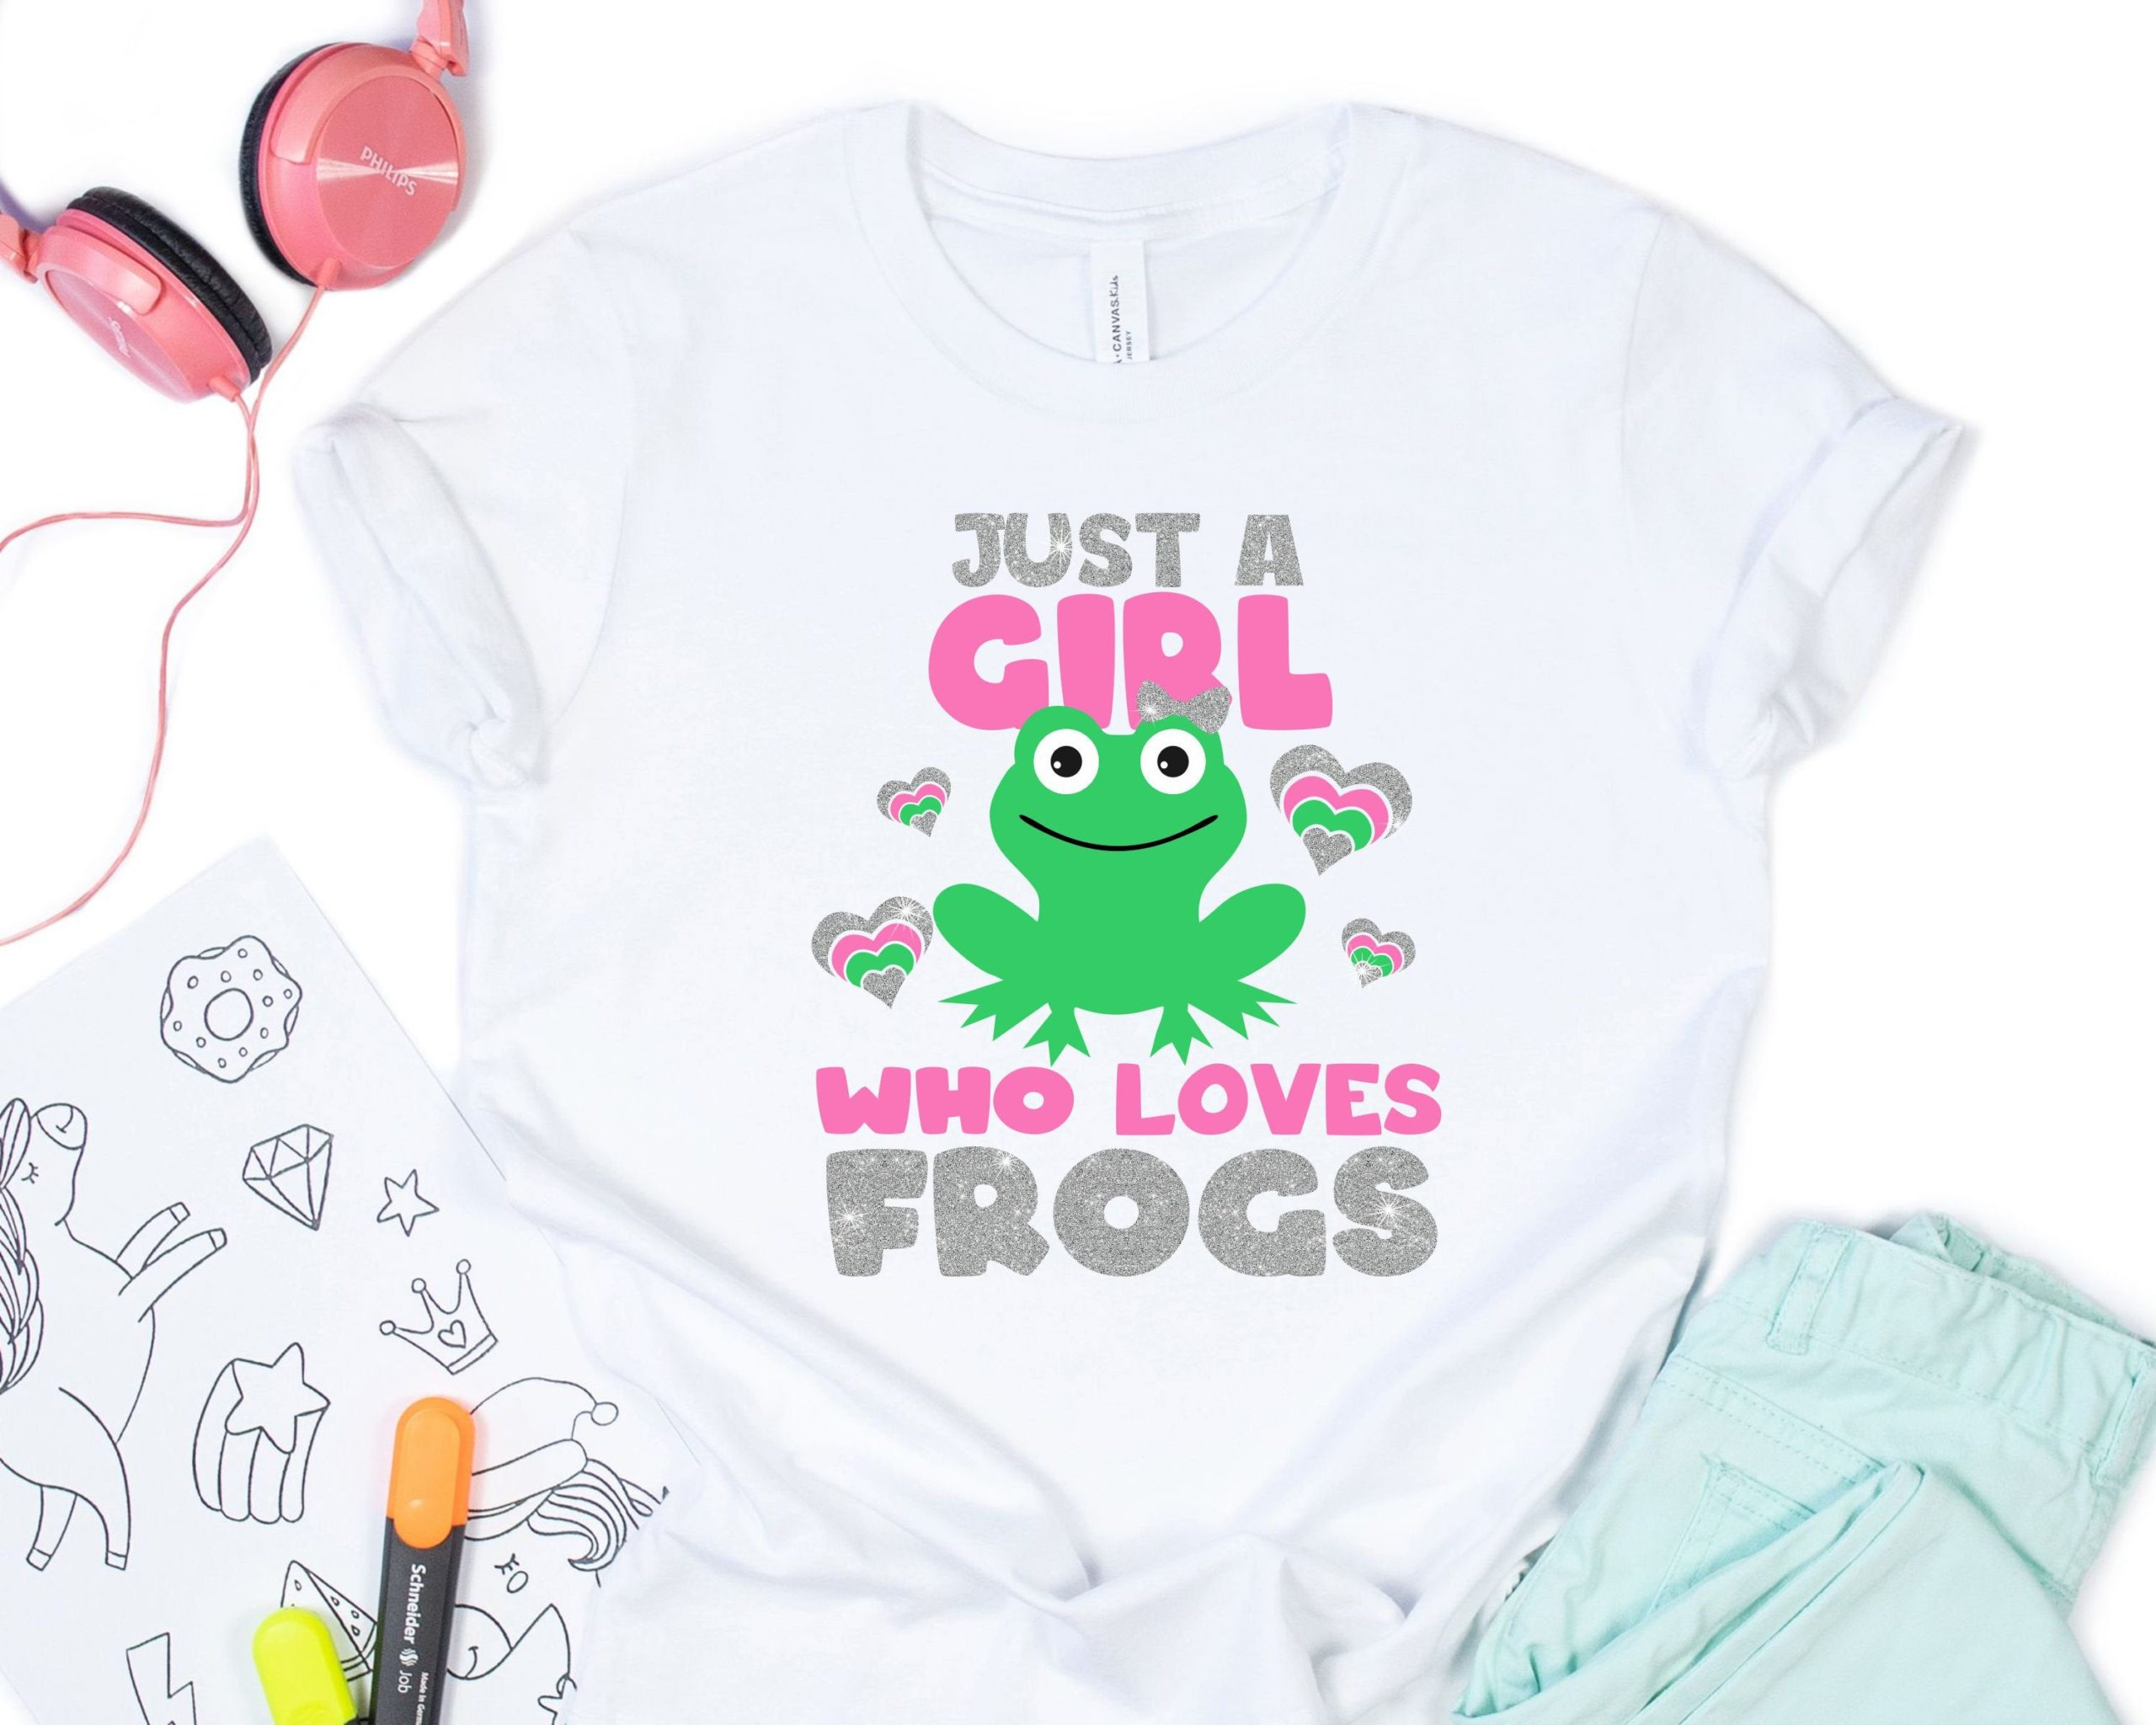 Just-a-girls-who-loves-frogs-svg-kids-design-svg-frog-svg-valentines-day-svg-valentine-svg-designs-cricut-valentines-day-svg-600a0331